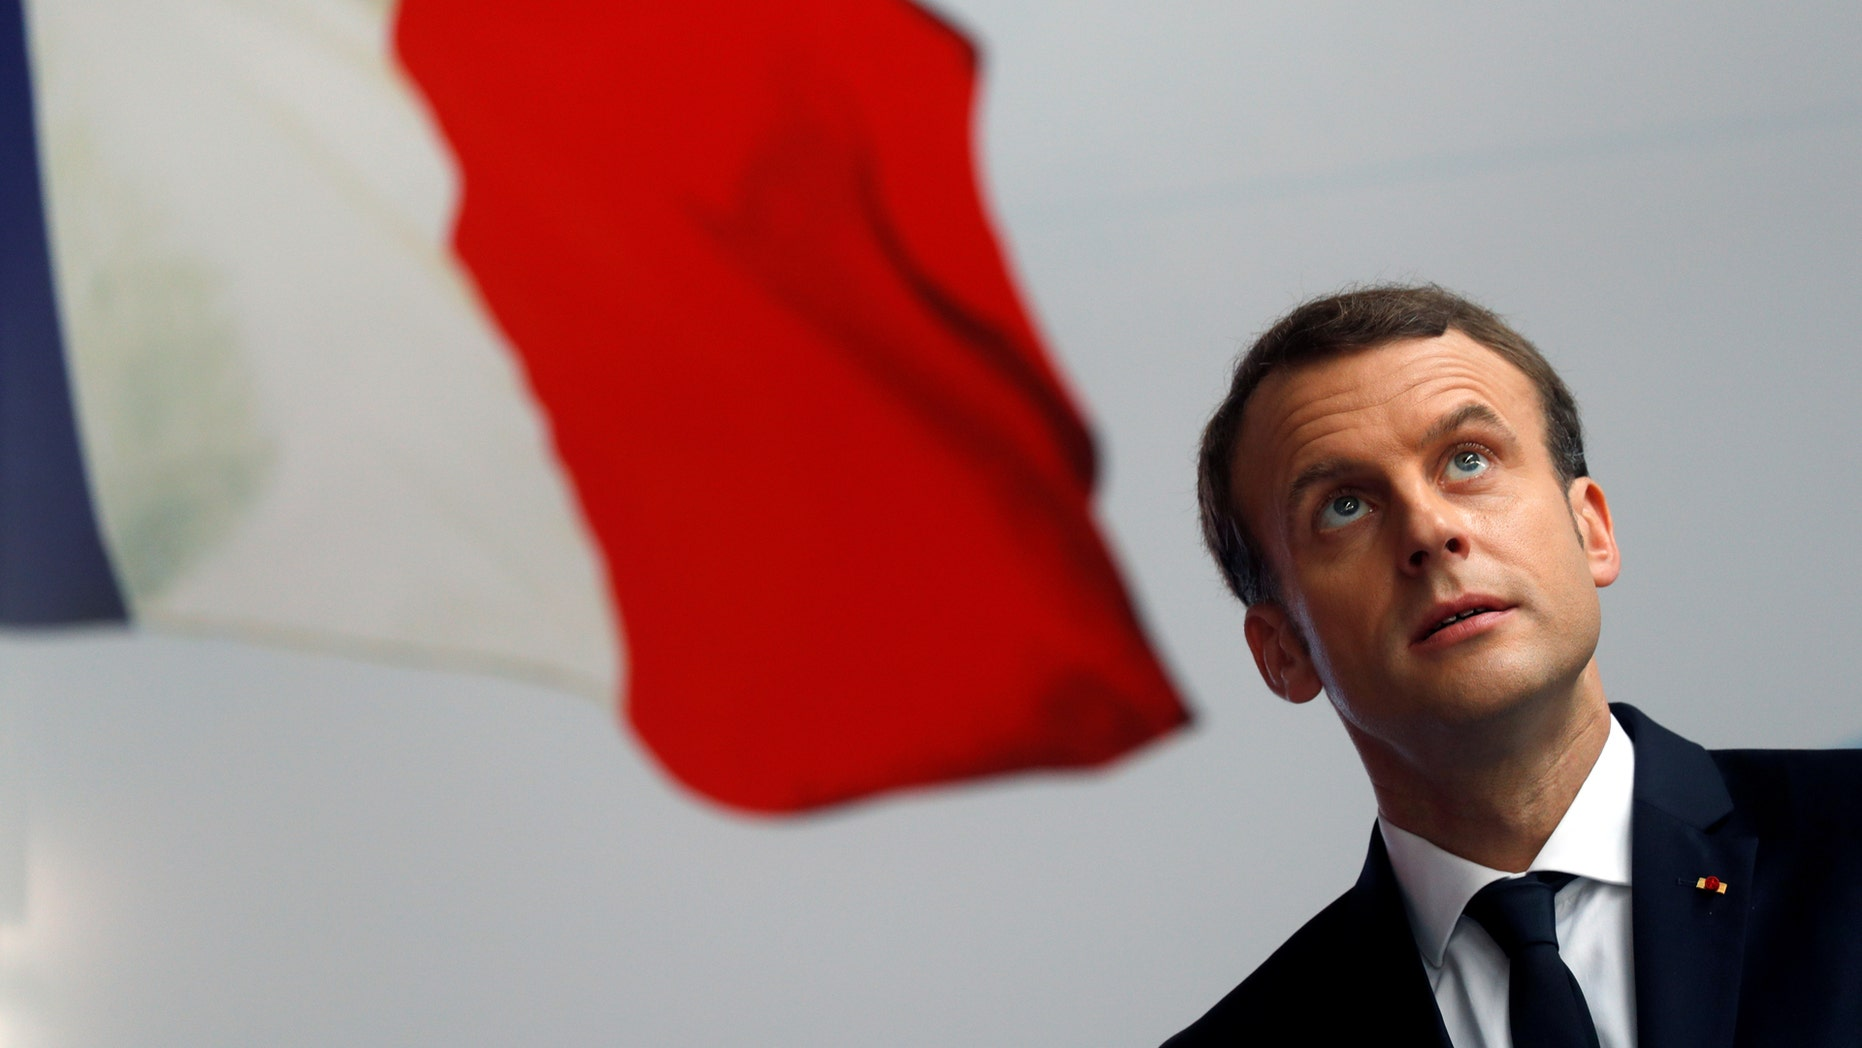 File photo - French President Emmanuel Macron attends a ceremony to start the construction of the first metro line in Abidjan, Ivory Coast, Nov. 30, 2017. (REUTERS/Philippe Wojazer) -